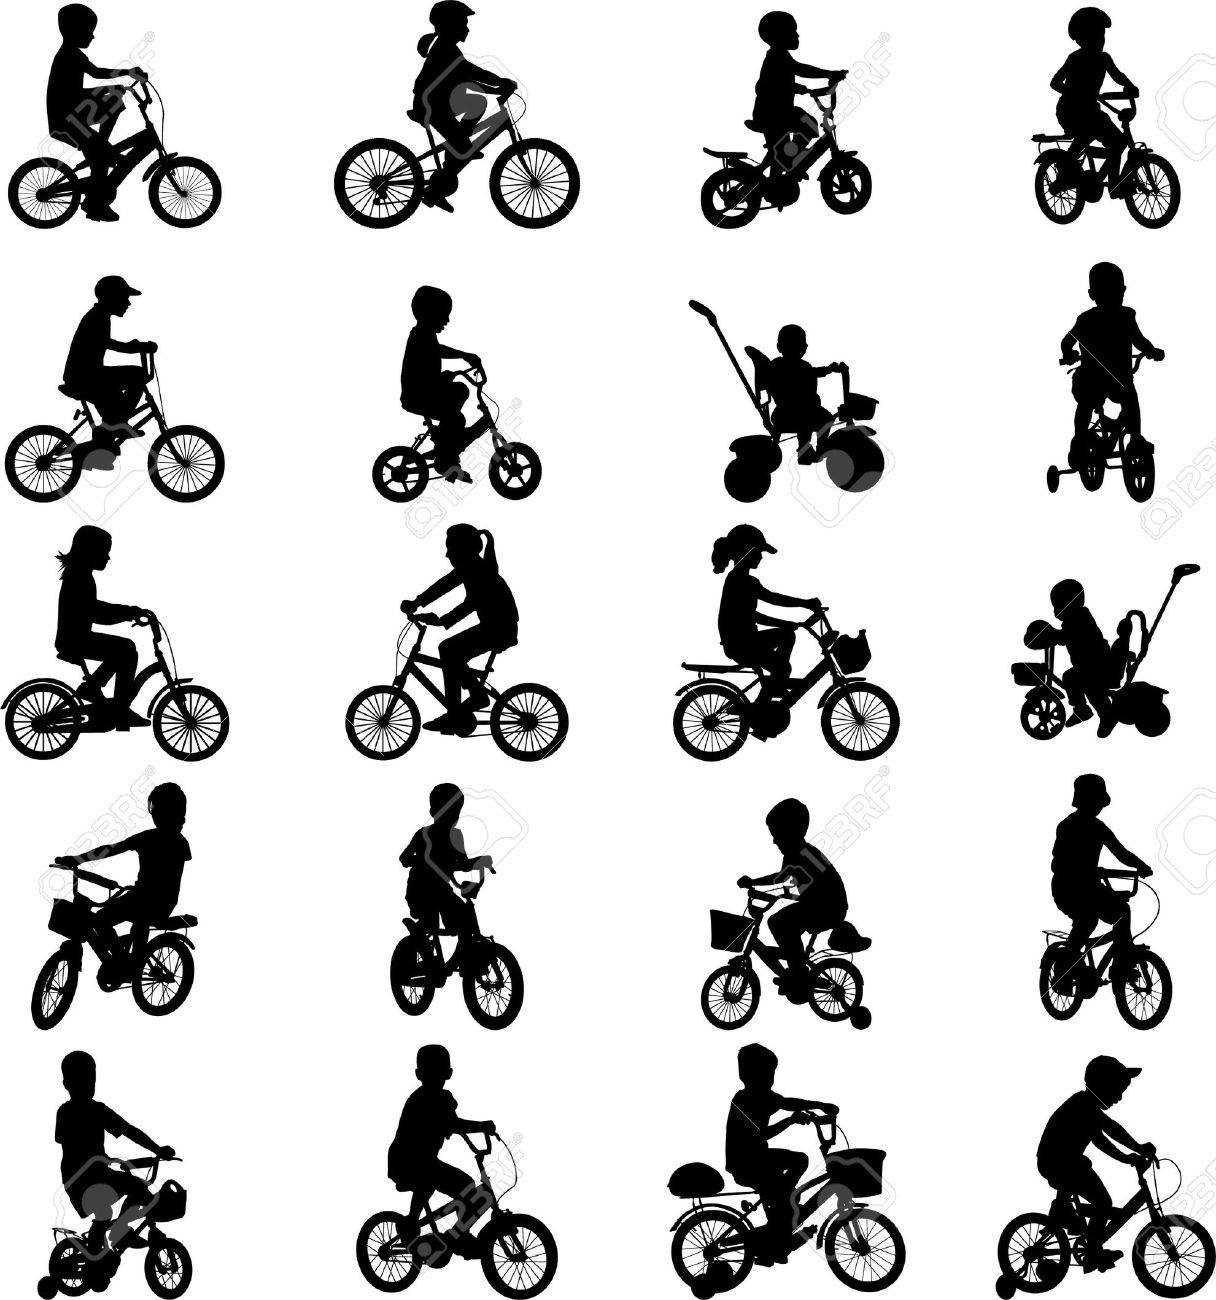 children riding bicycles silhouettes - 13103926